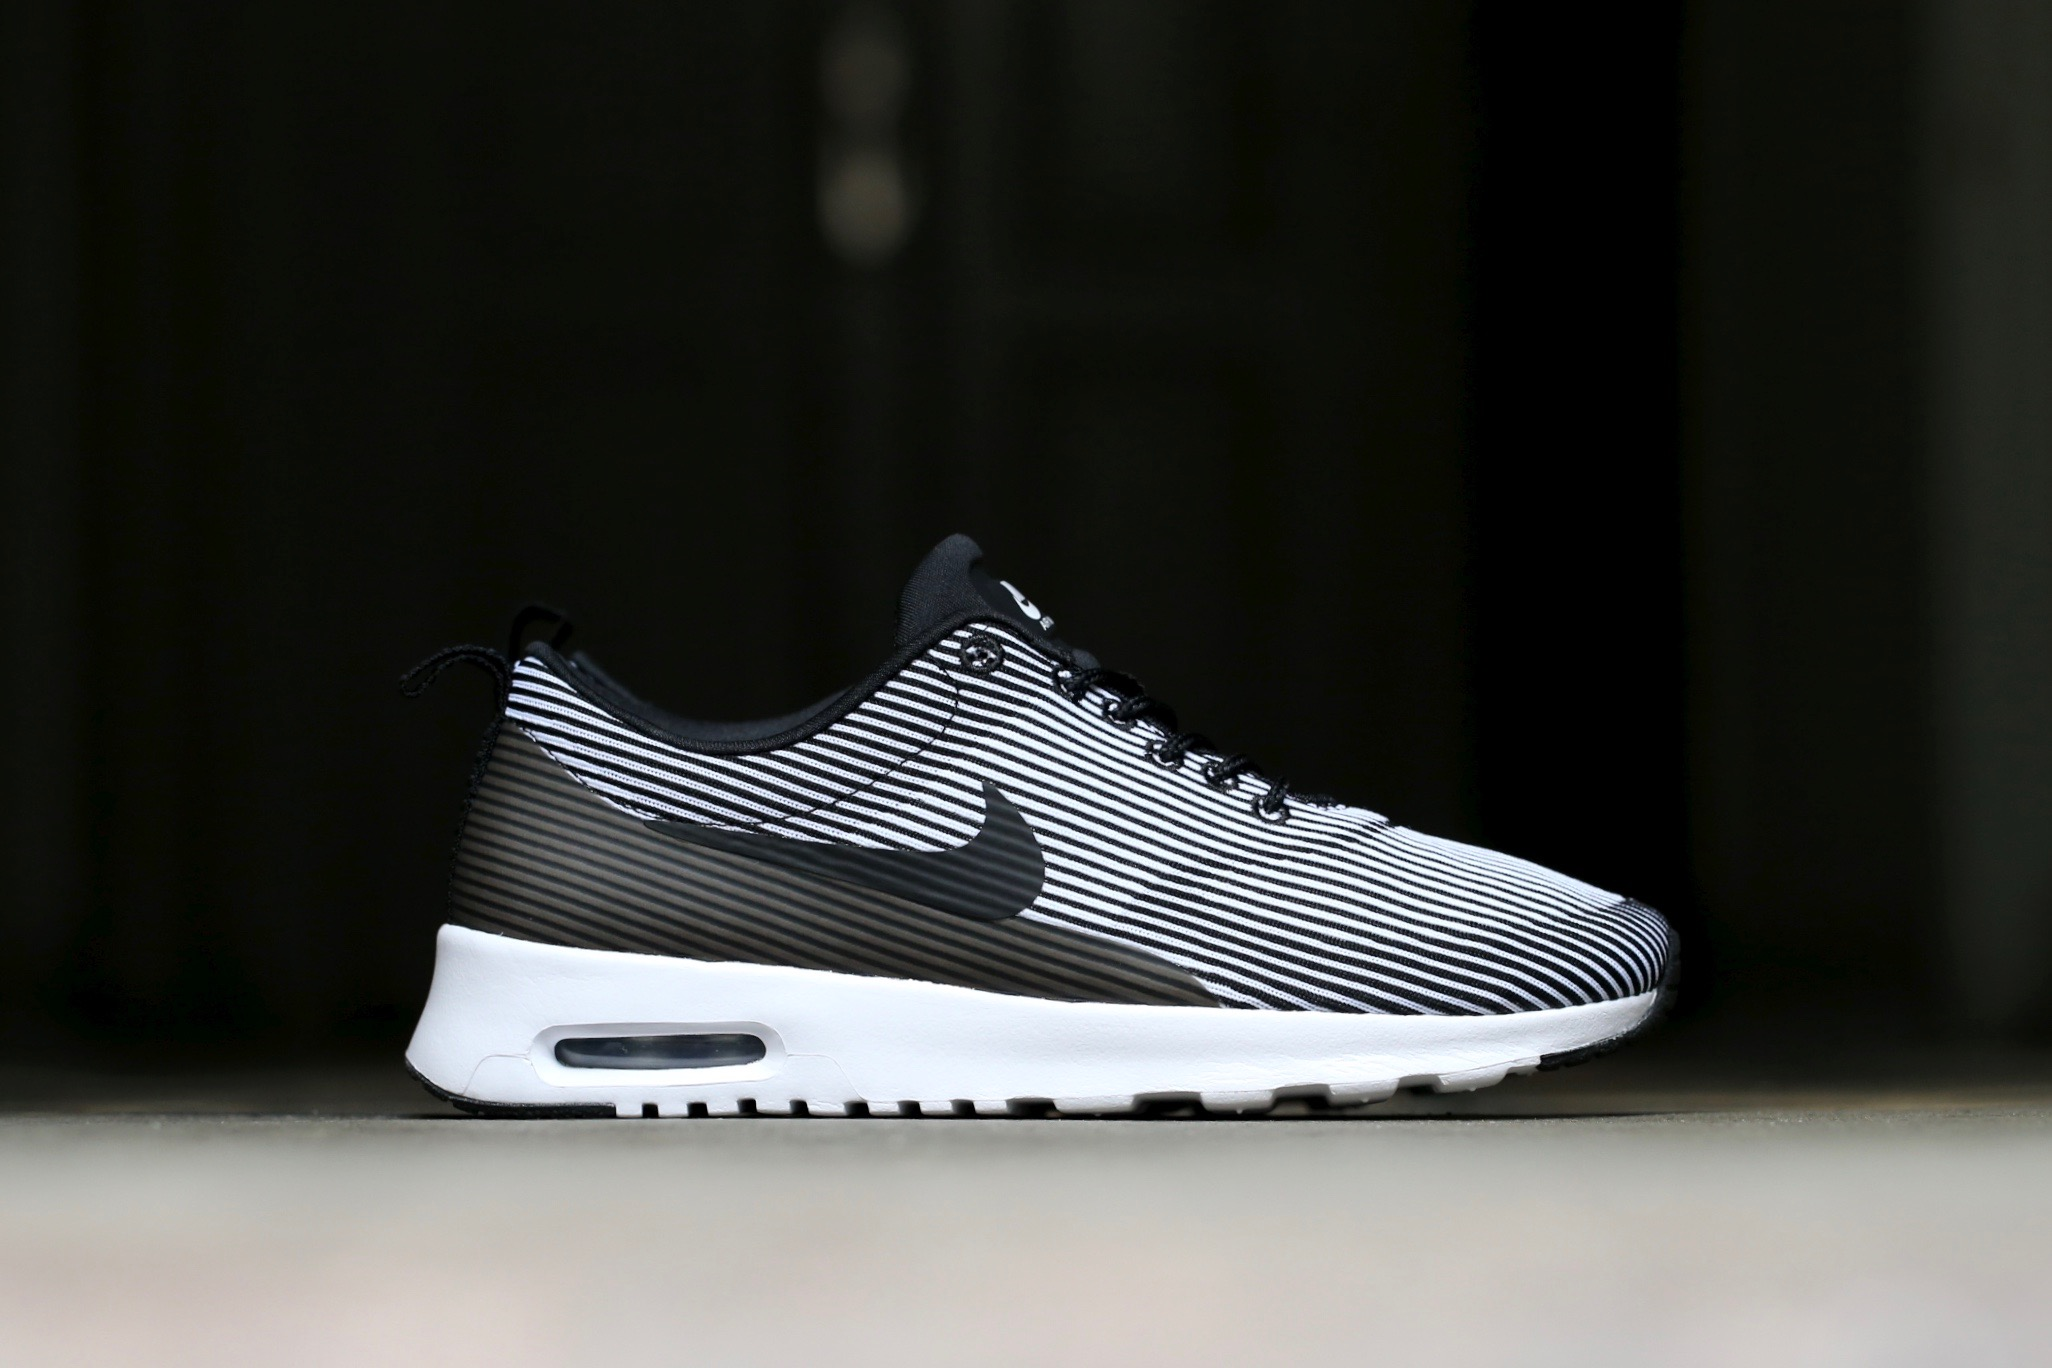 WMNS NIKE AIR MAX THEA KJCRD LIGHT WEIGHT RUNNING (718646 004) SZ: 6.5